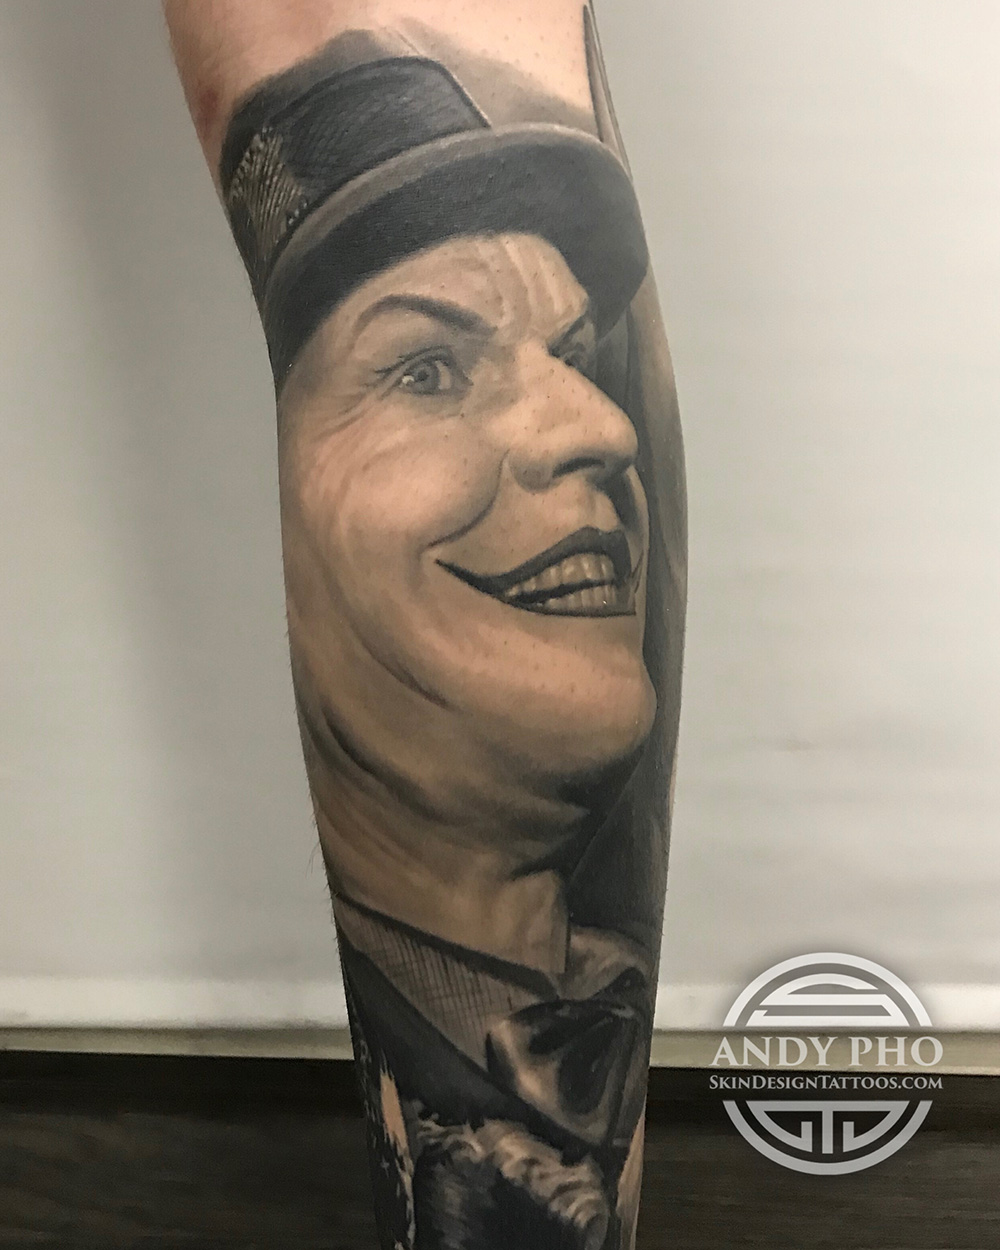 Andy Pho Joker tattoo.JPG